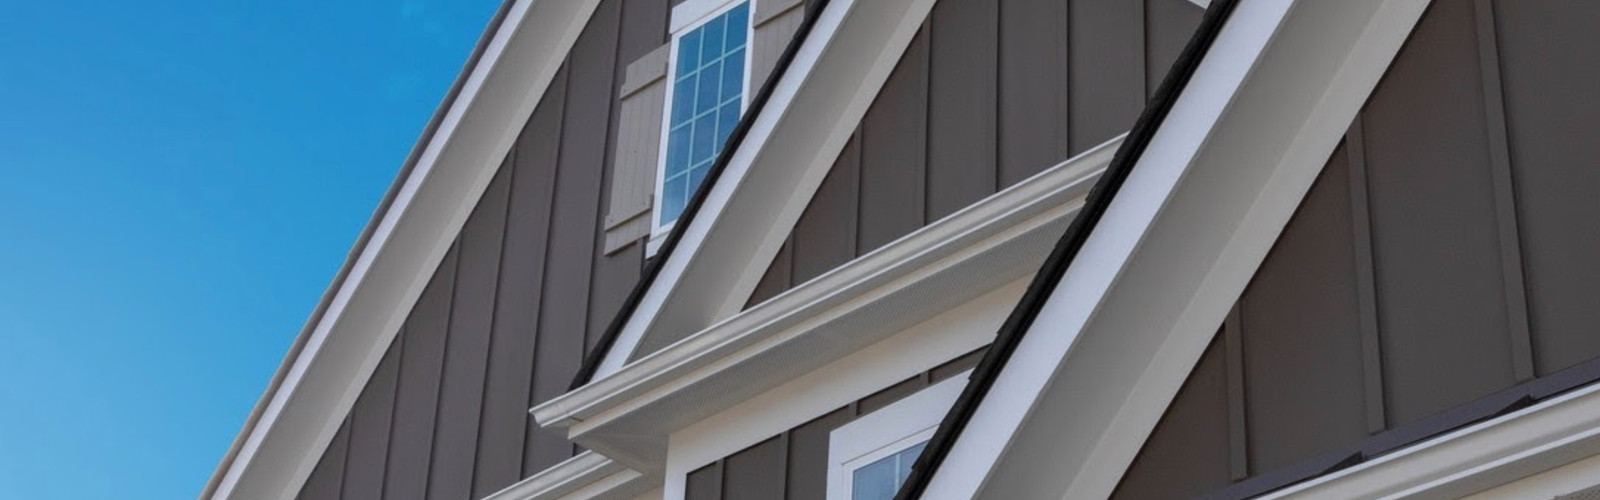 Pewter Siding Color